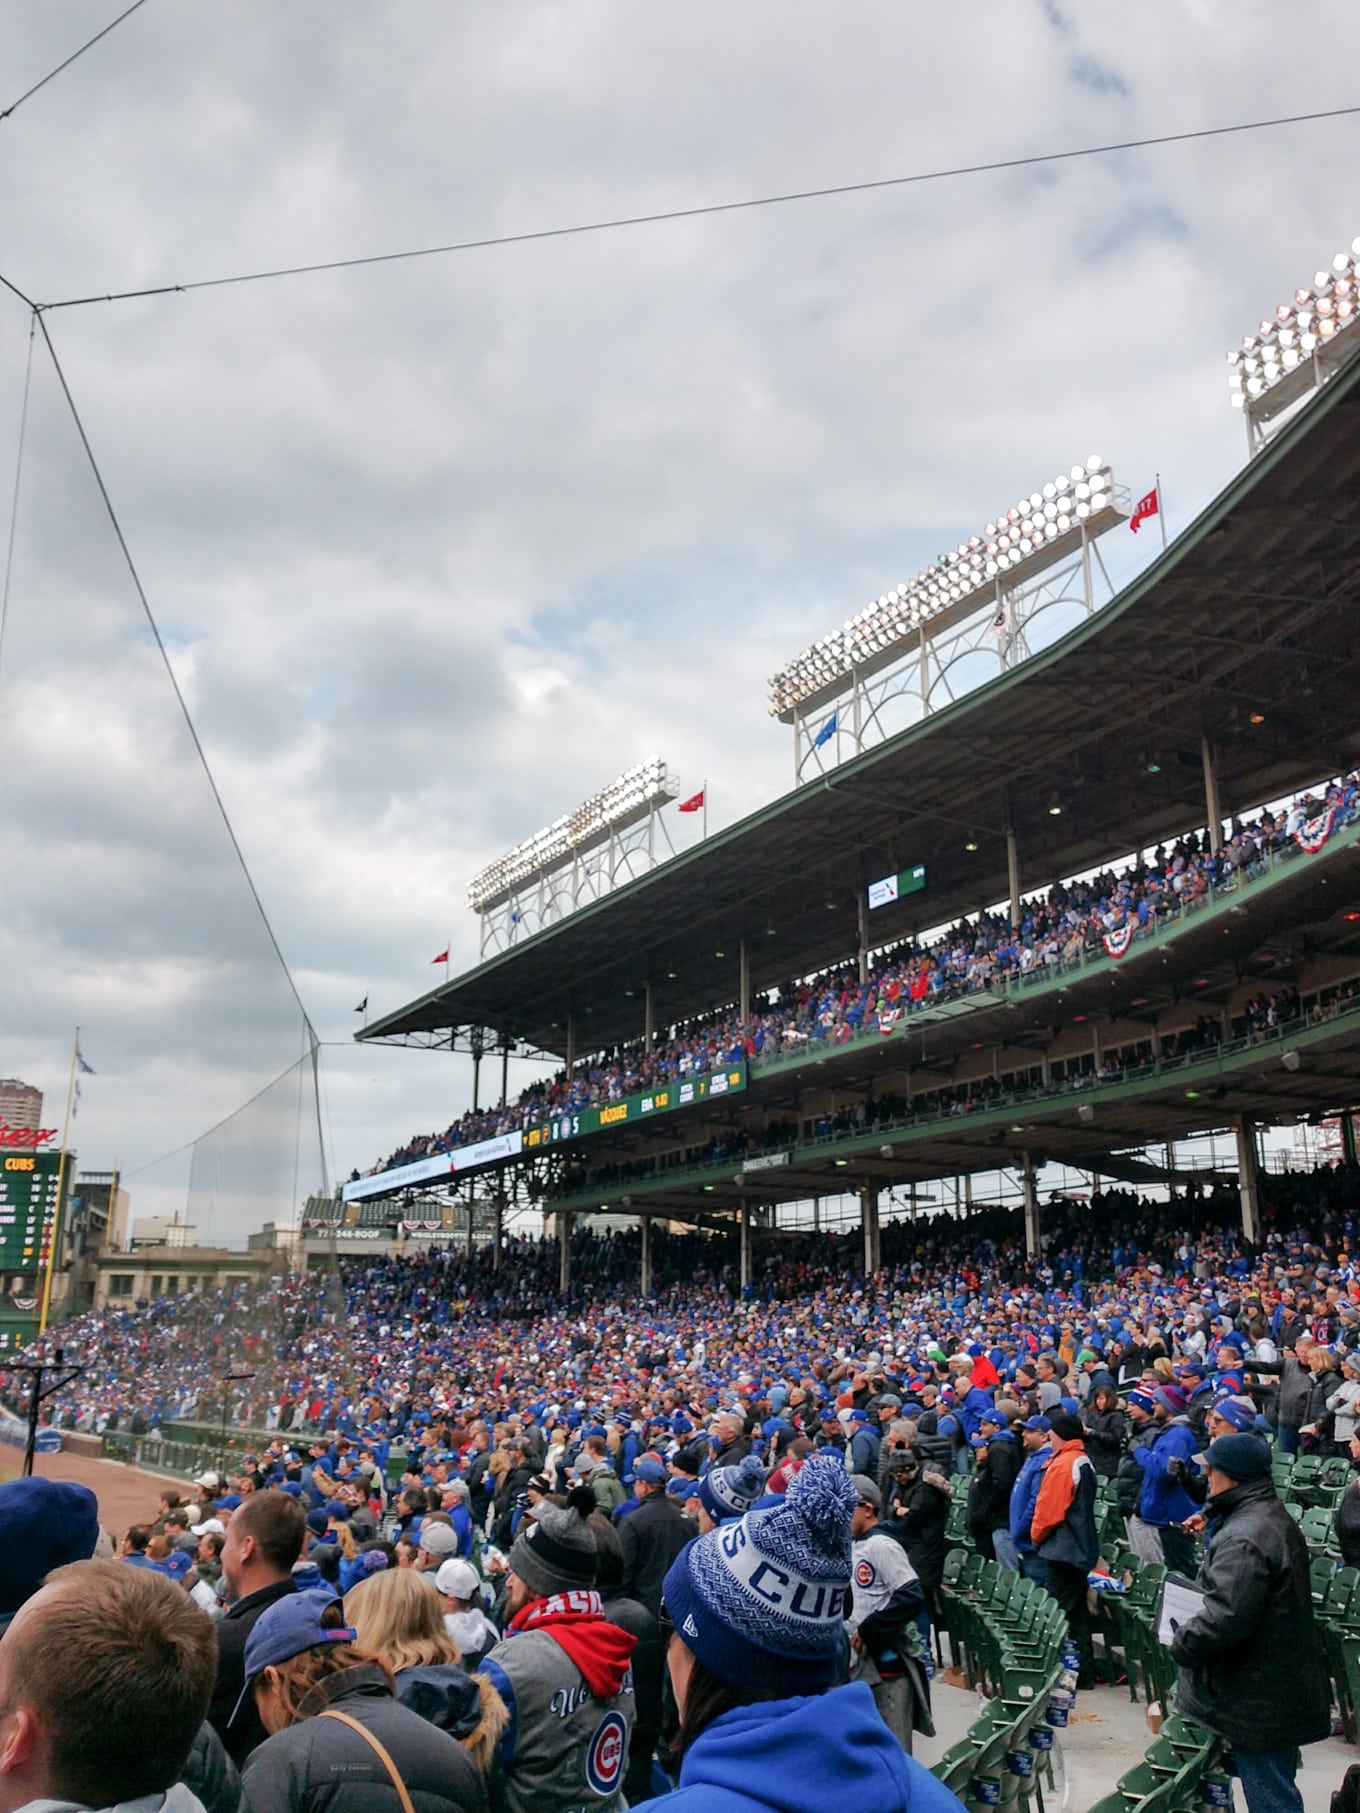 Cubs Home Opener with the Moto z2Force!